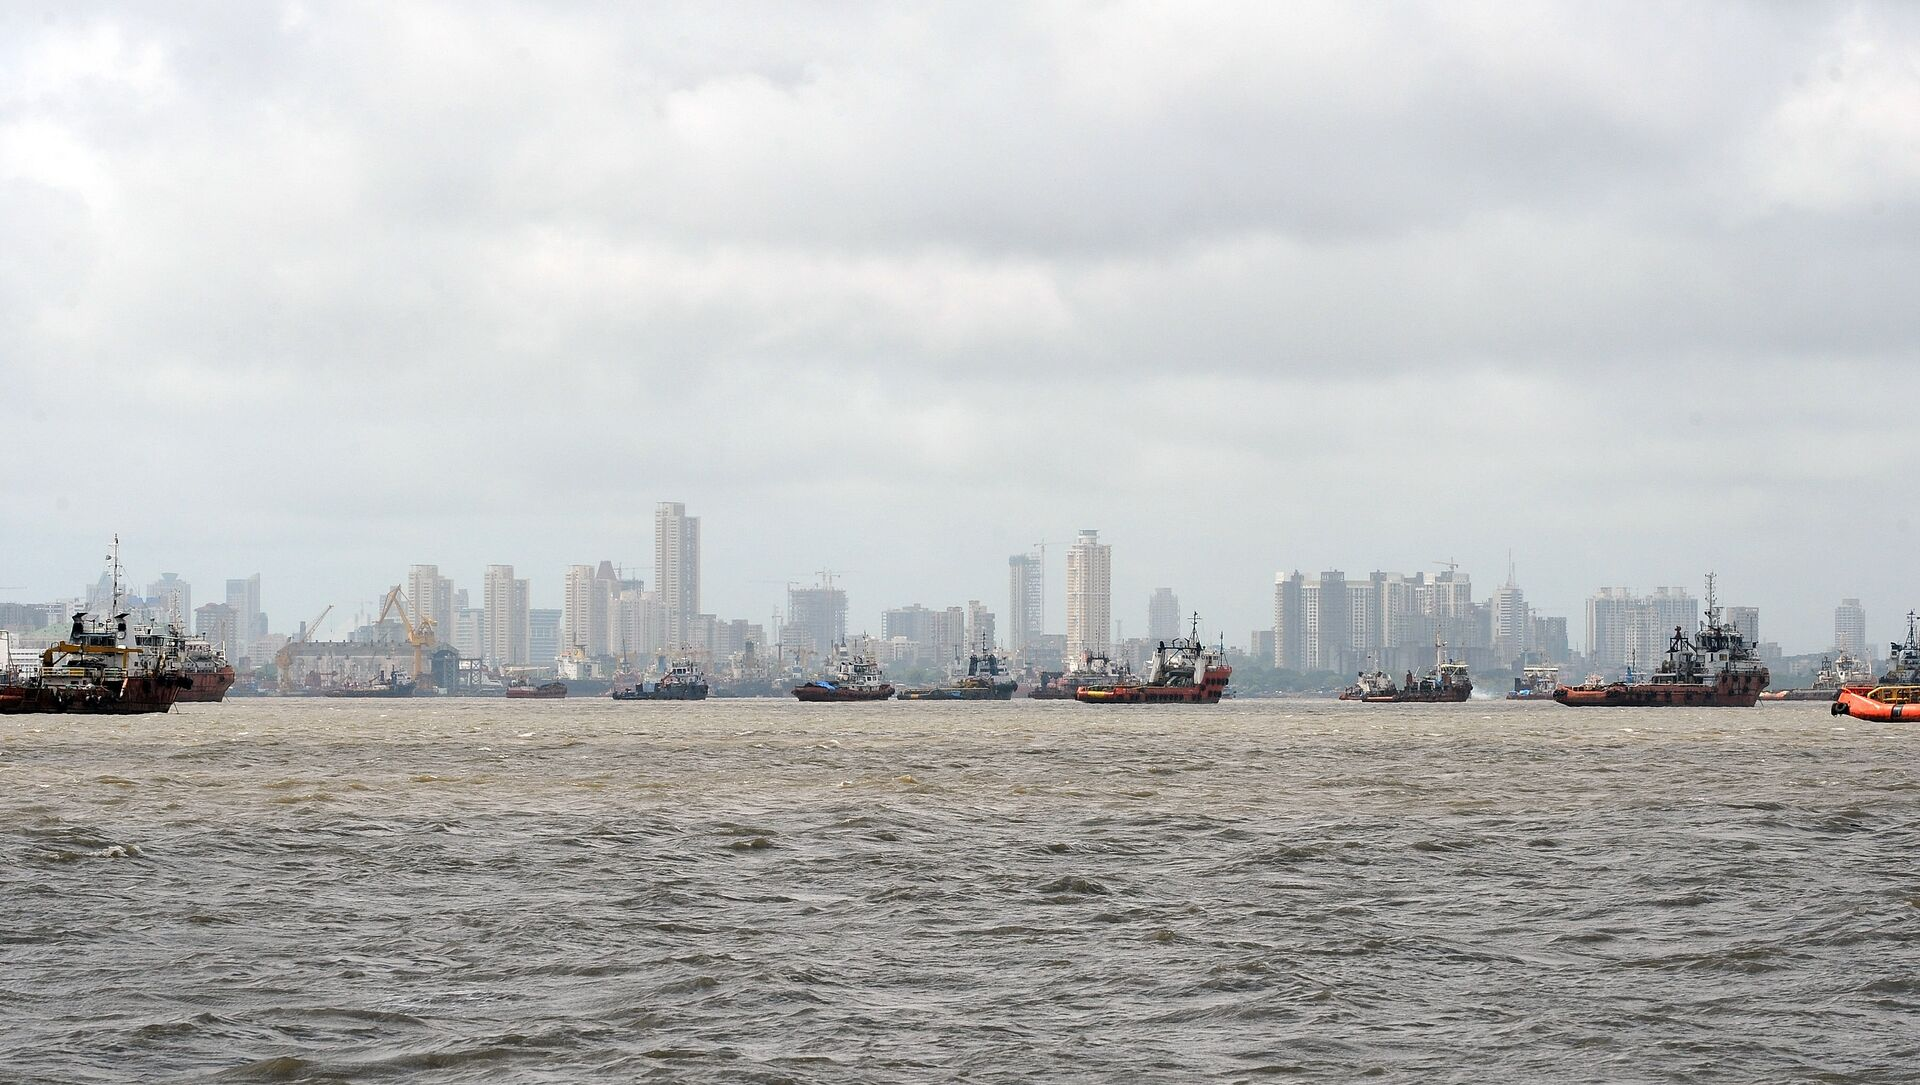 Ships are seen anchored in the Arabian sea following following the closure of the Mumbai port after a maritime accident involving the cargo ship MSC Chitra off the Mumbai coast on August 11, 2010 - Sputnik International, 1920, 30.07.2021